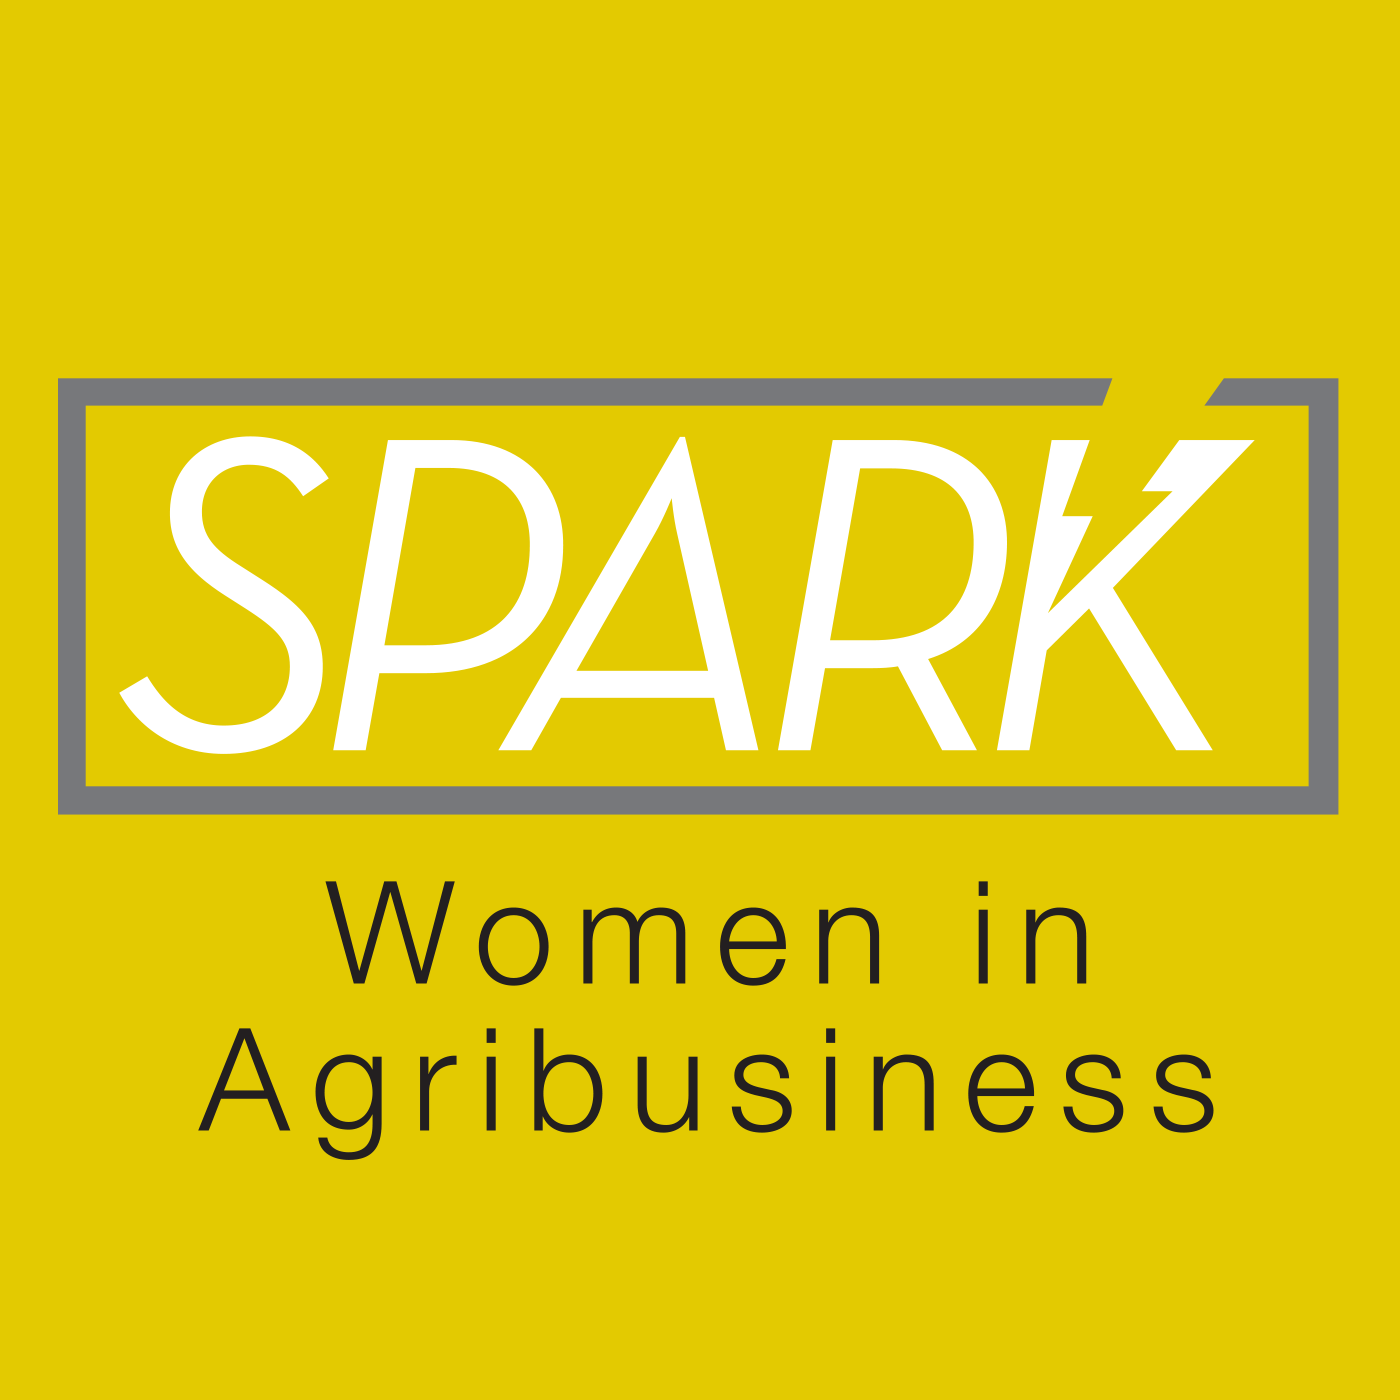 spark-women in agribusiness